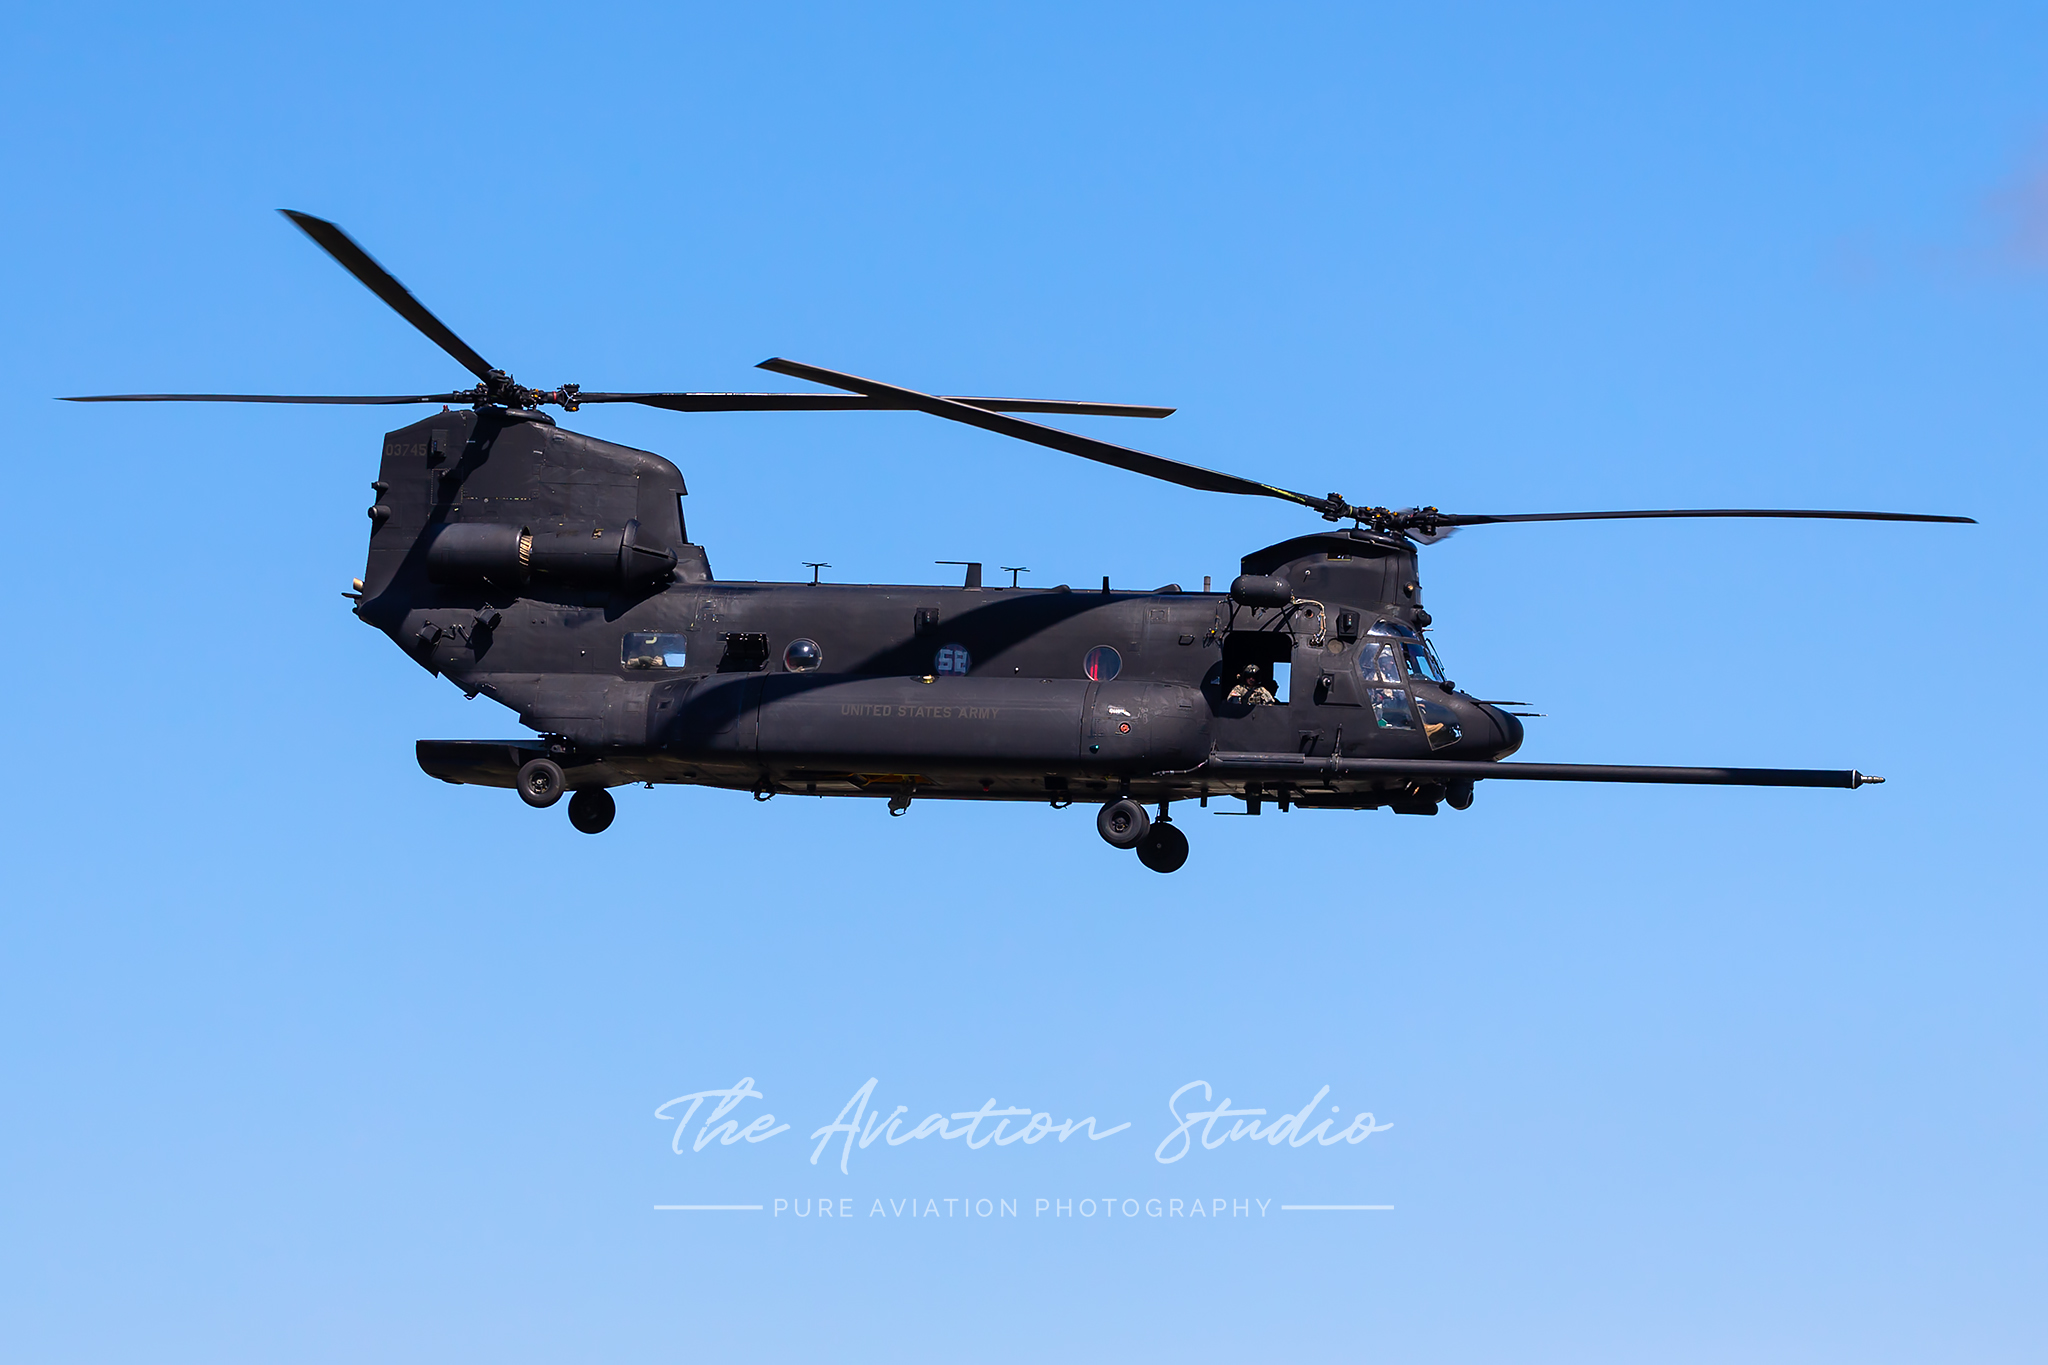 A 160th SOAR(A) Boeing MH-47G Chinook on a sortie (Image: Lance Broad)